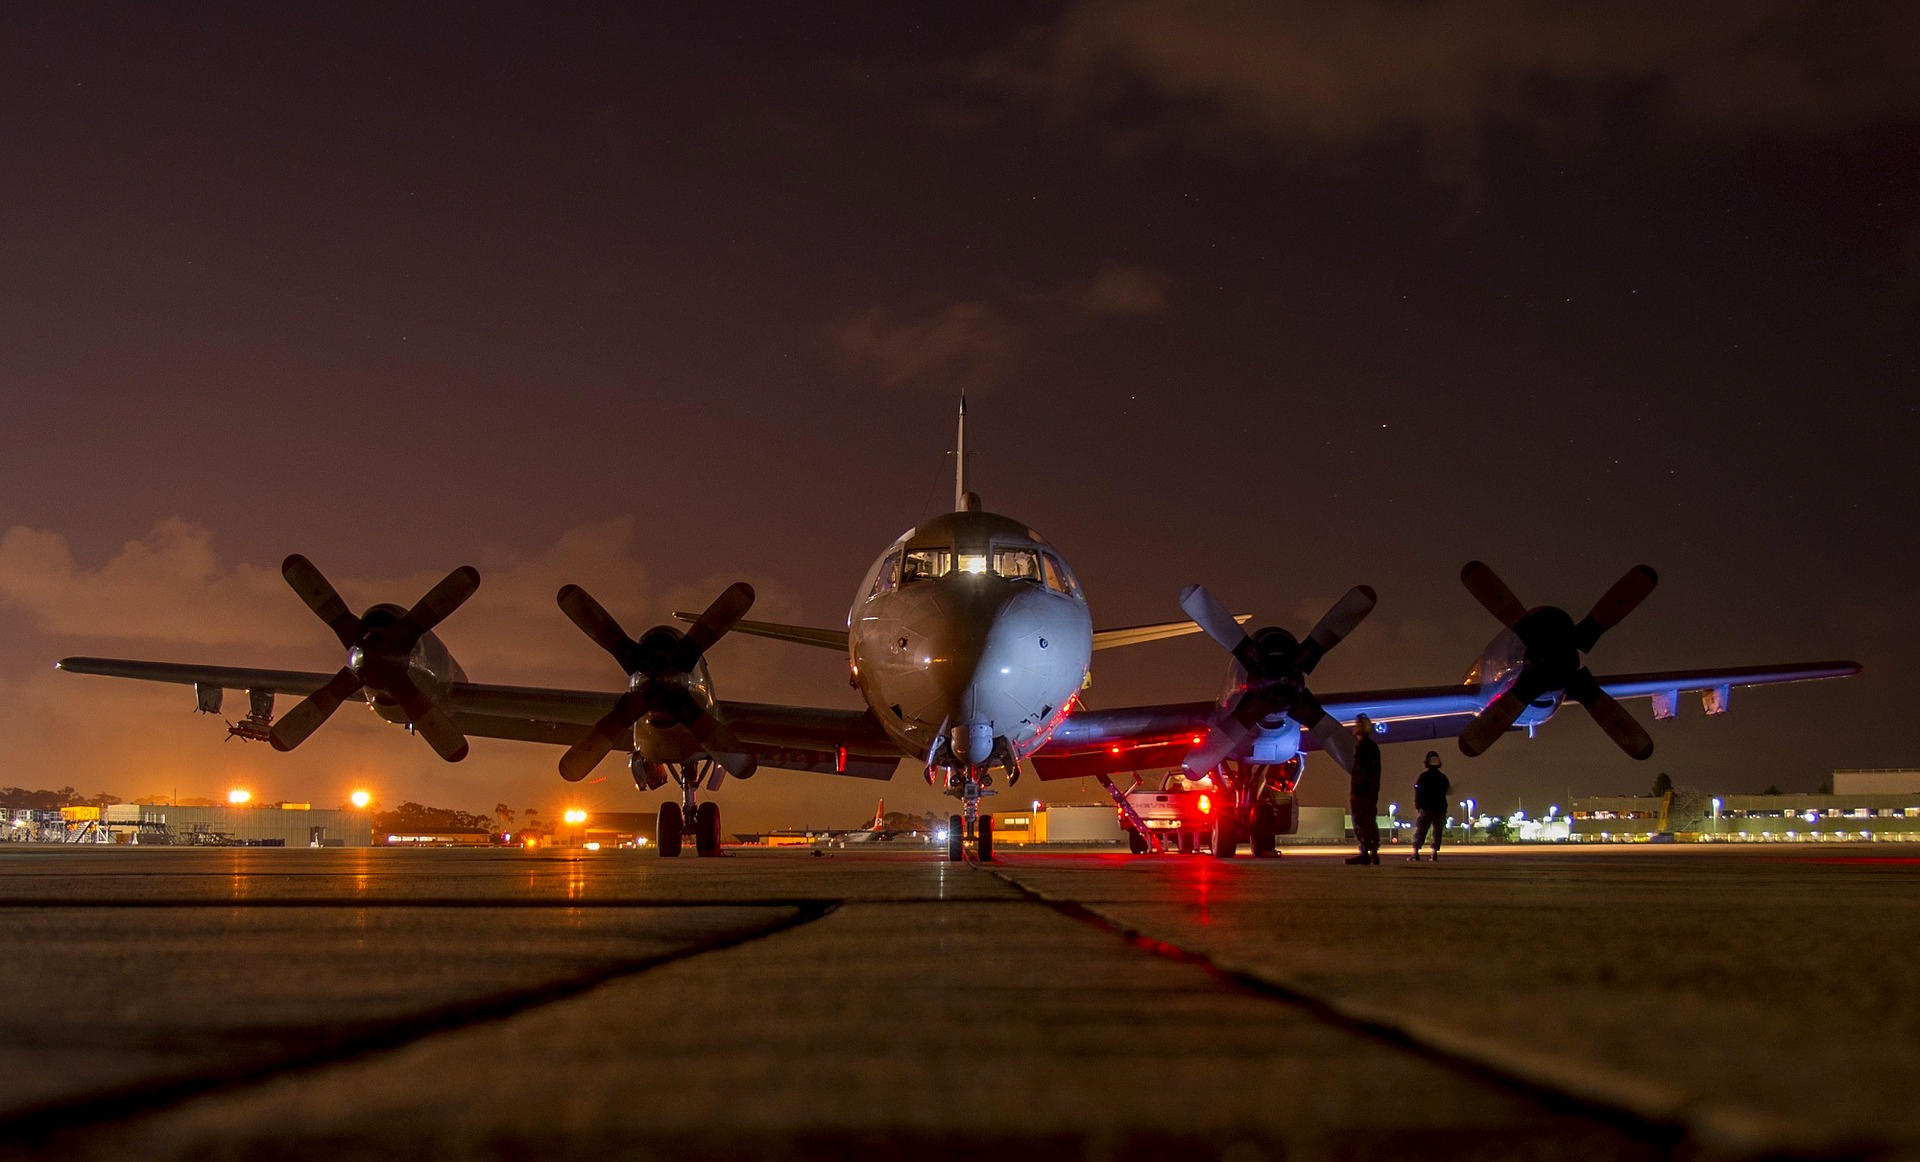 Lockheed P-3 Orion Aircraft on runway at night